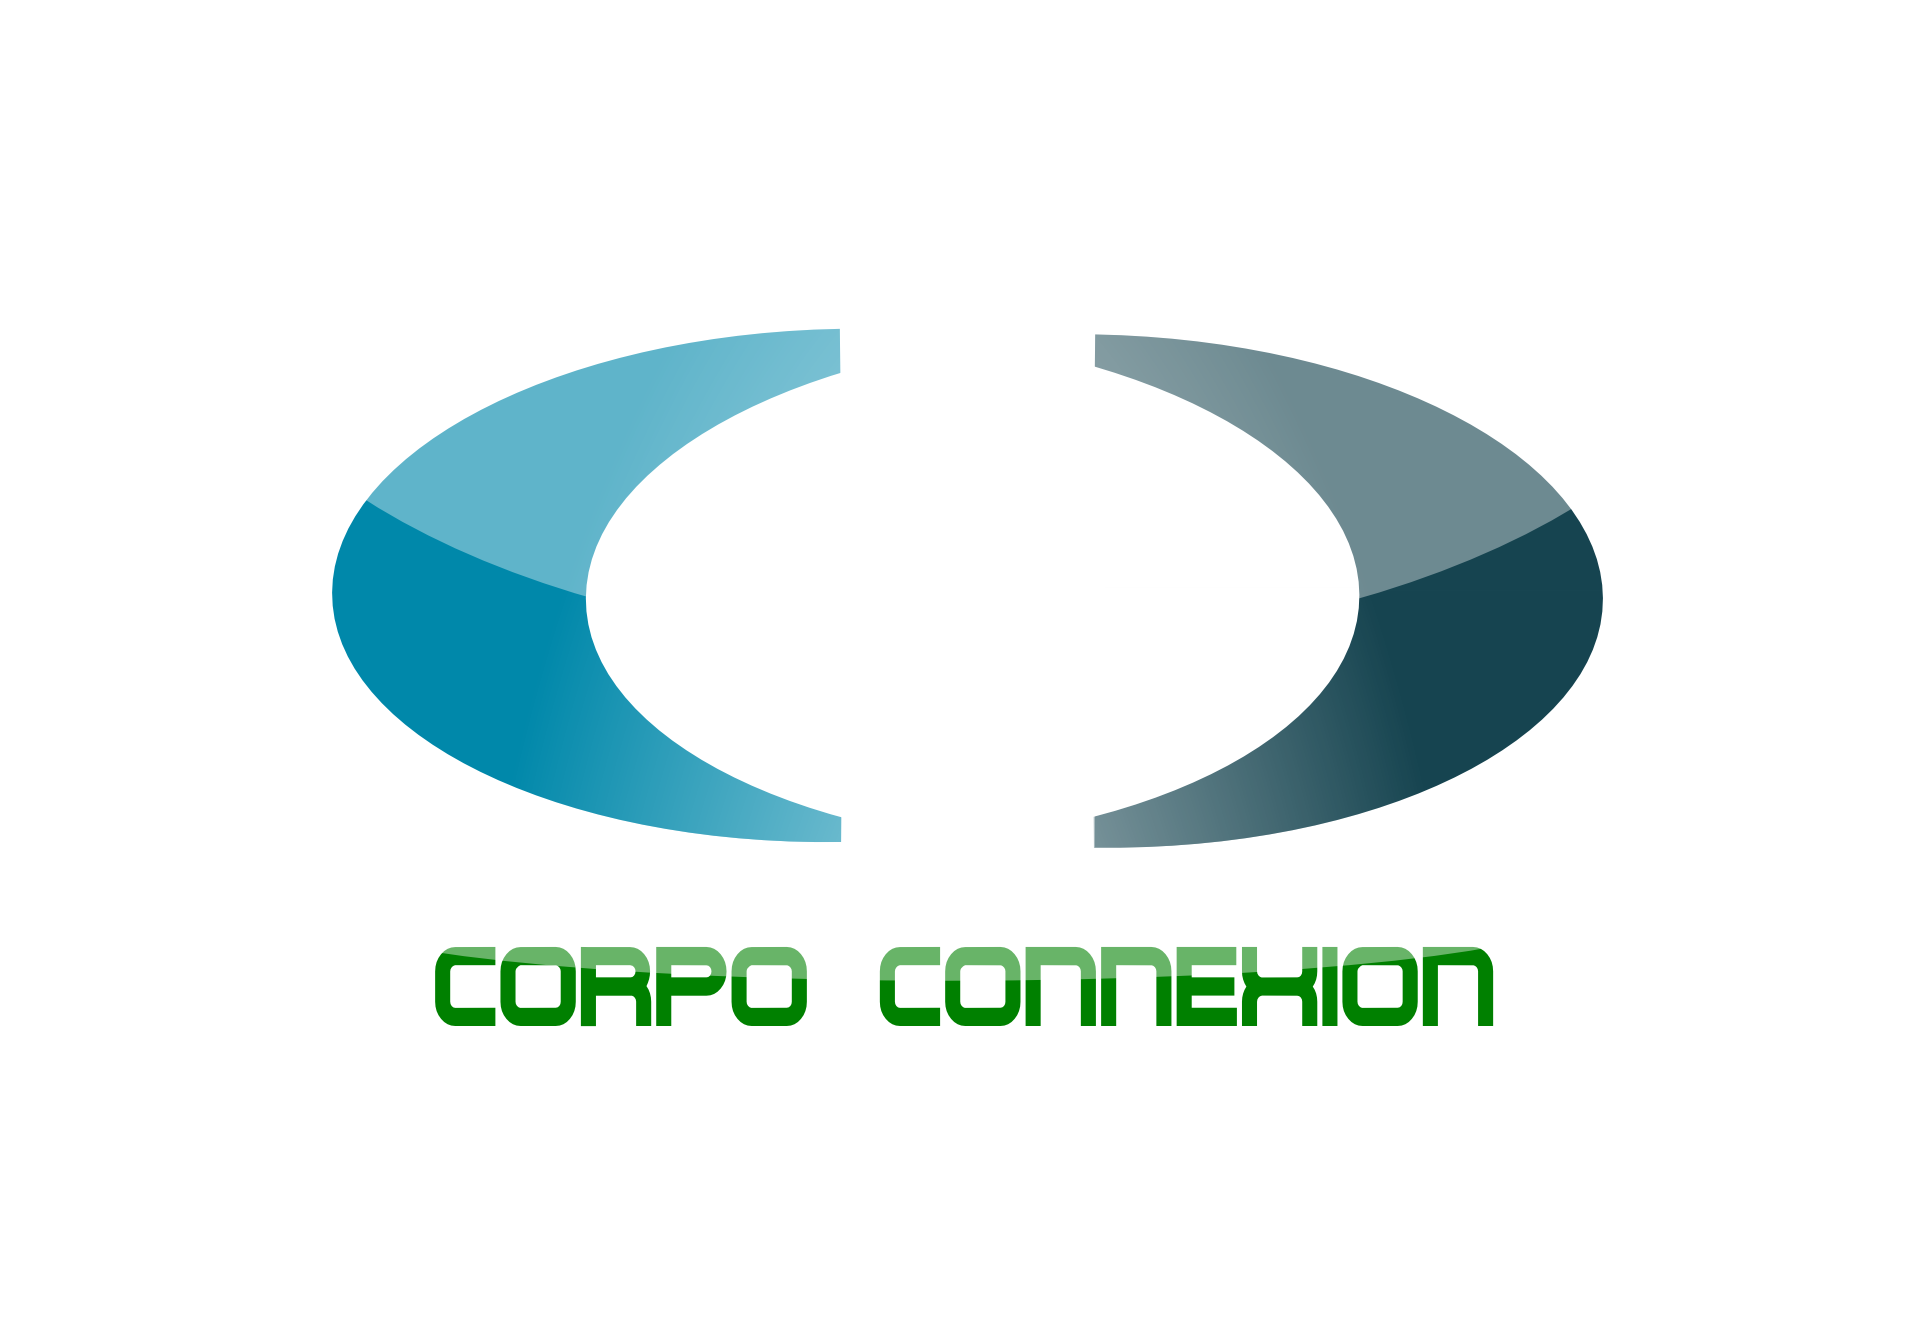 Logo Design by Joseph calunsag Cagaanan - Entry No. 46 in the Logo Design Contest Fun Logo Design for Corpo Connexion.